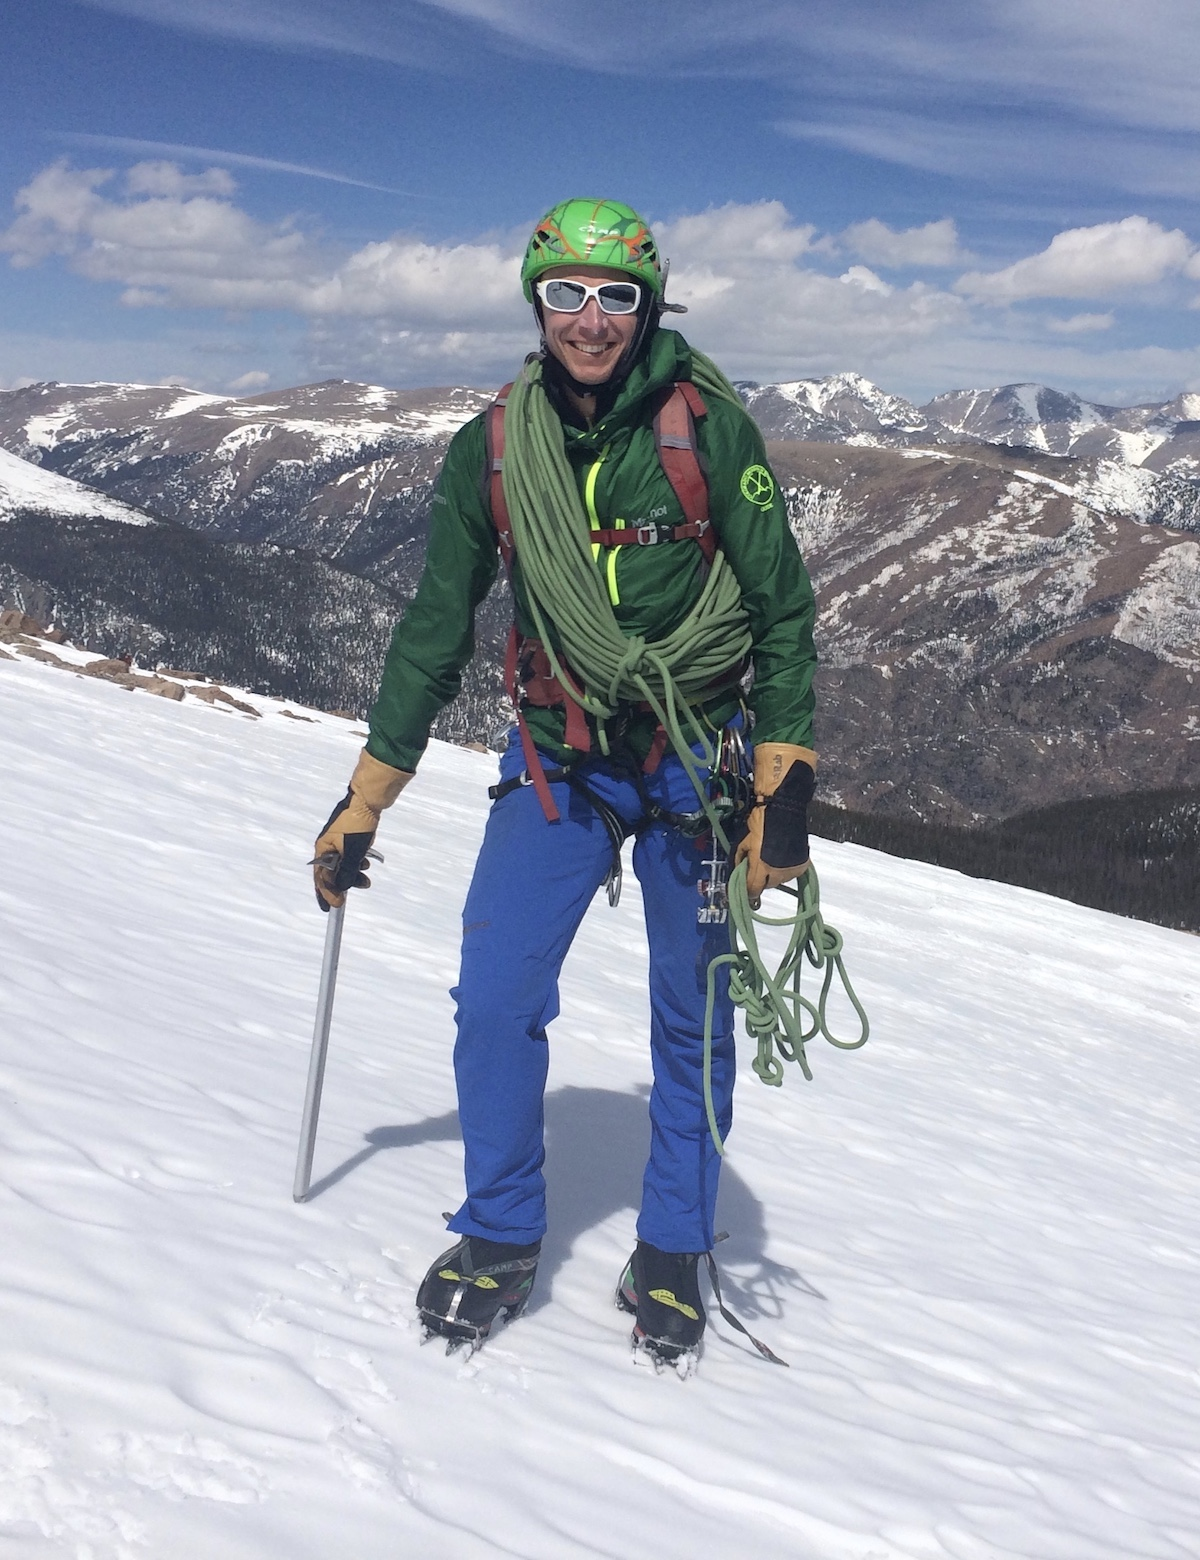 Mike Lewis wearing the Stetinds with crampons on Flattop Mountain, Rocky Mountain National Park, Colorado. [Photo] Mike Lewis collection